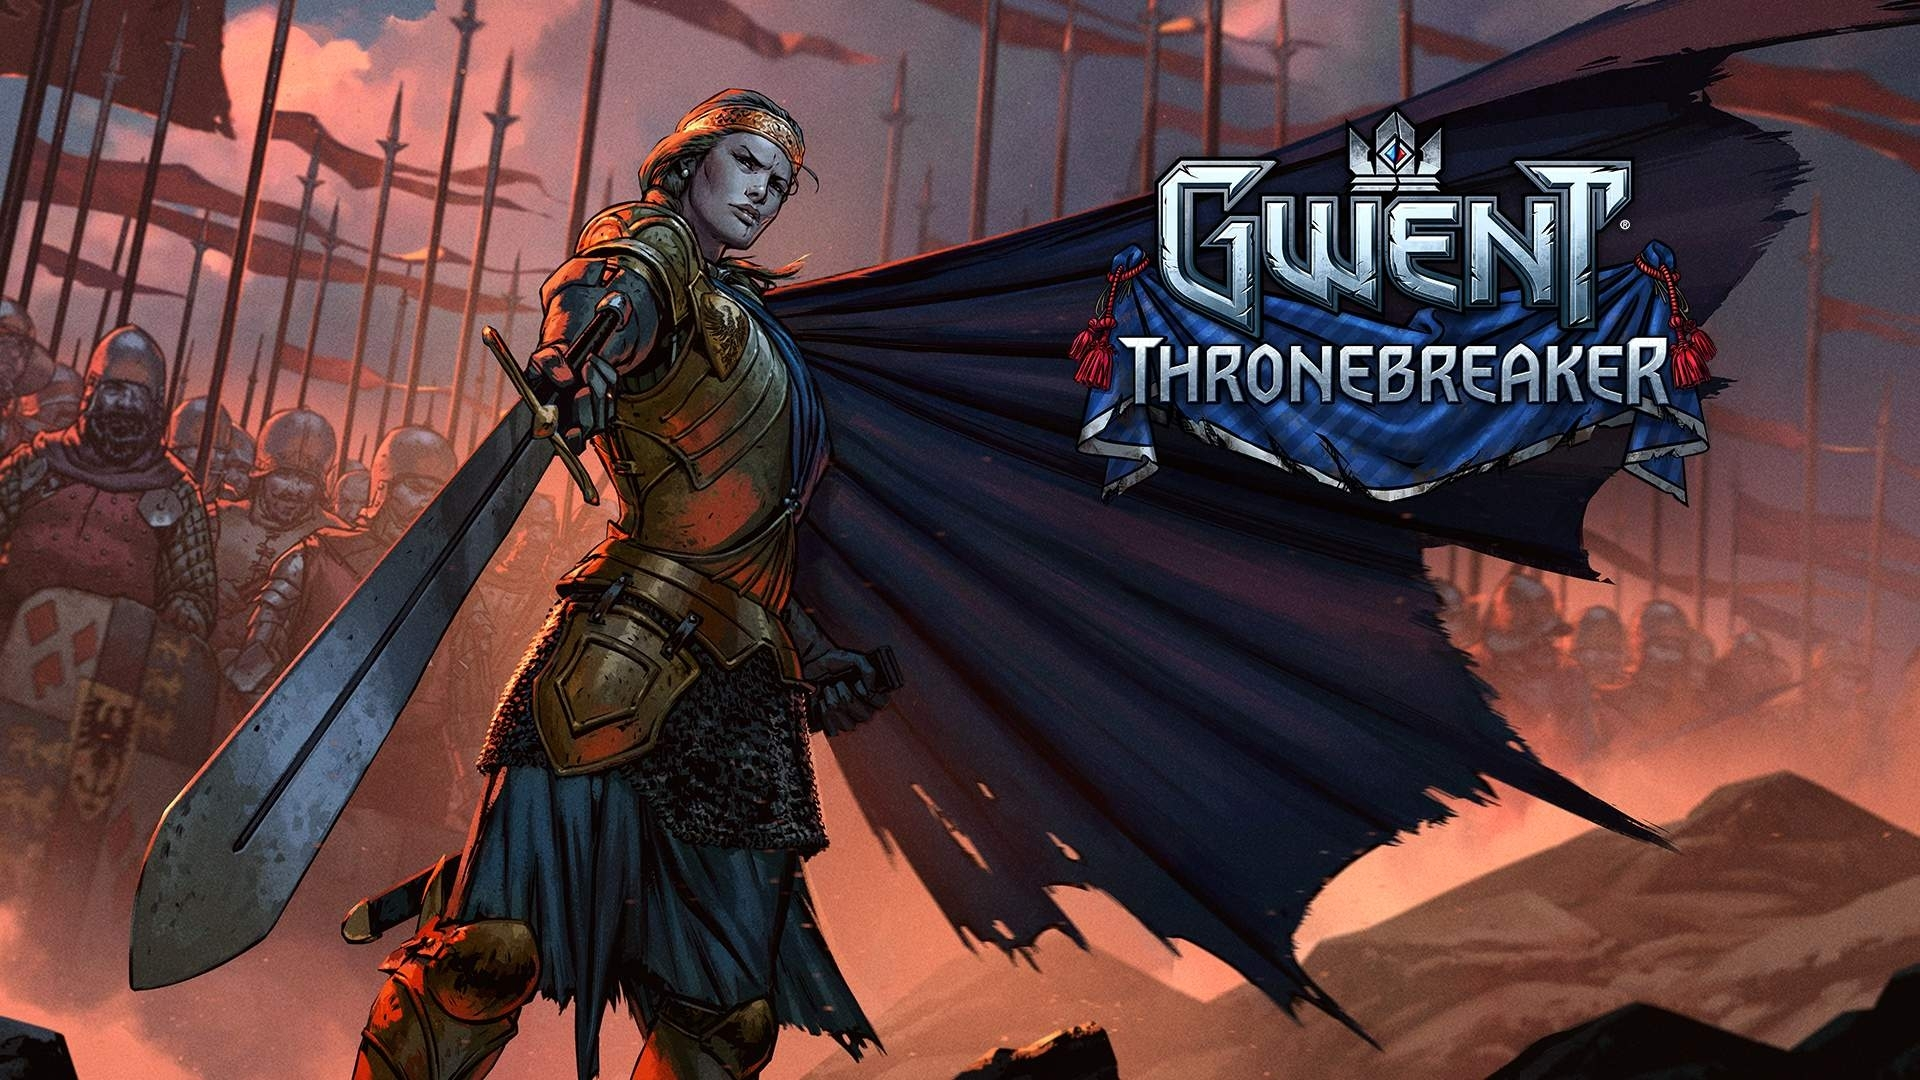 Thronebreaker: The Witcher Tales /  Кровная вражда: Ведьмак. Истории на русском языке | Repack